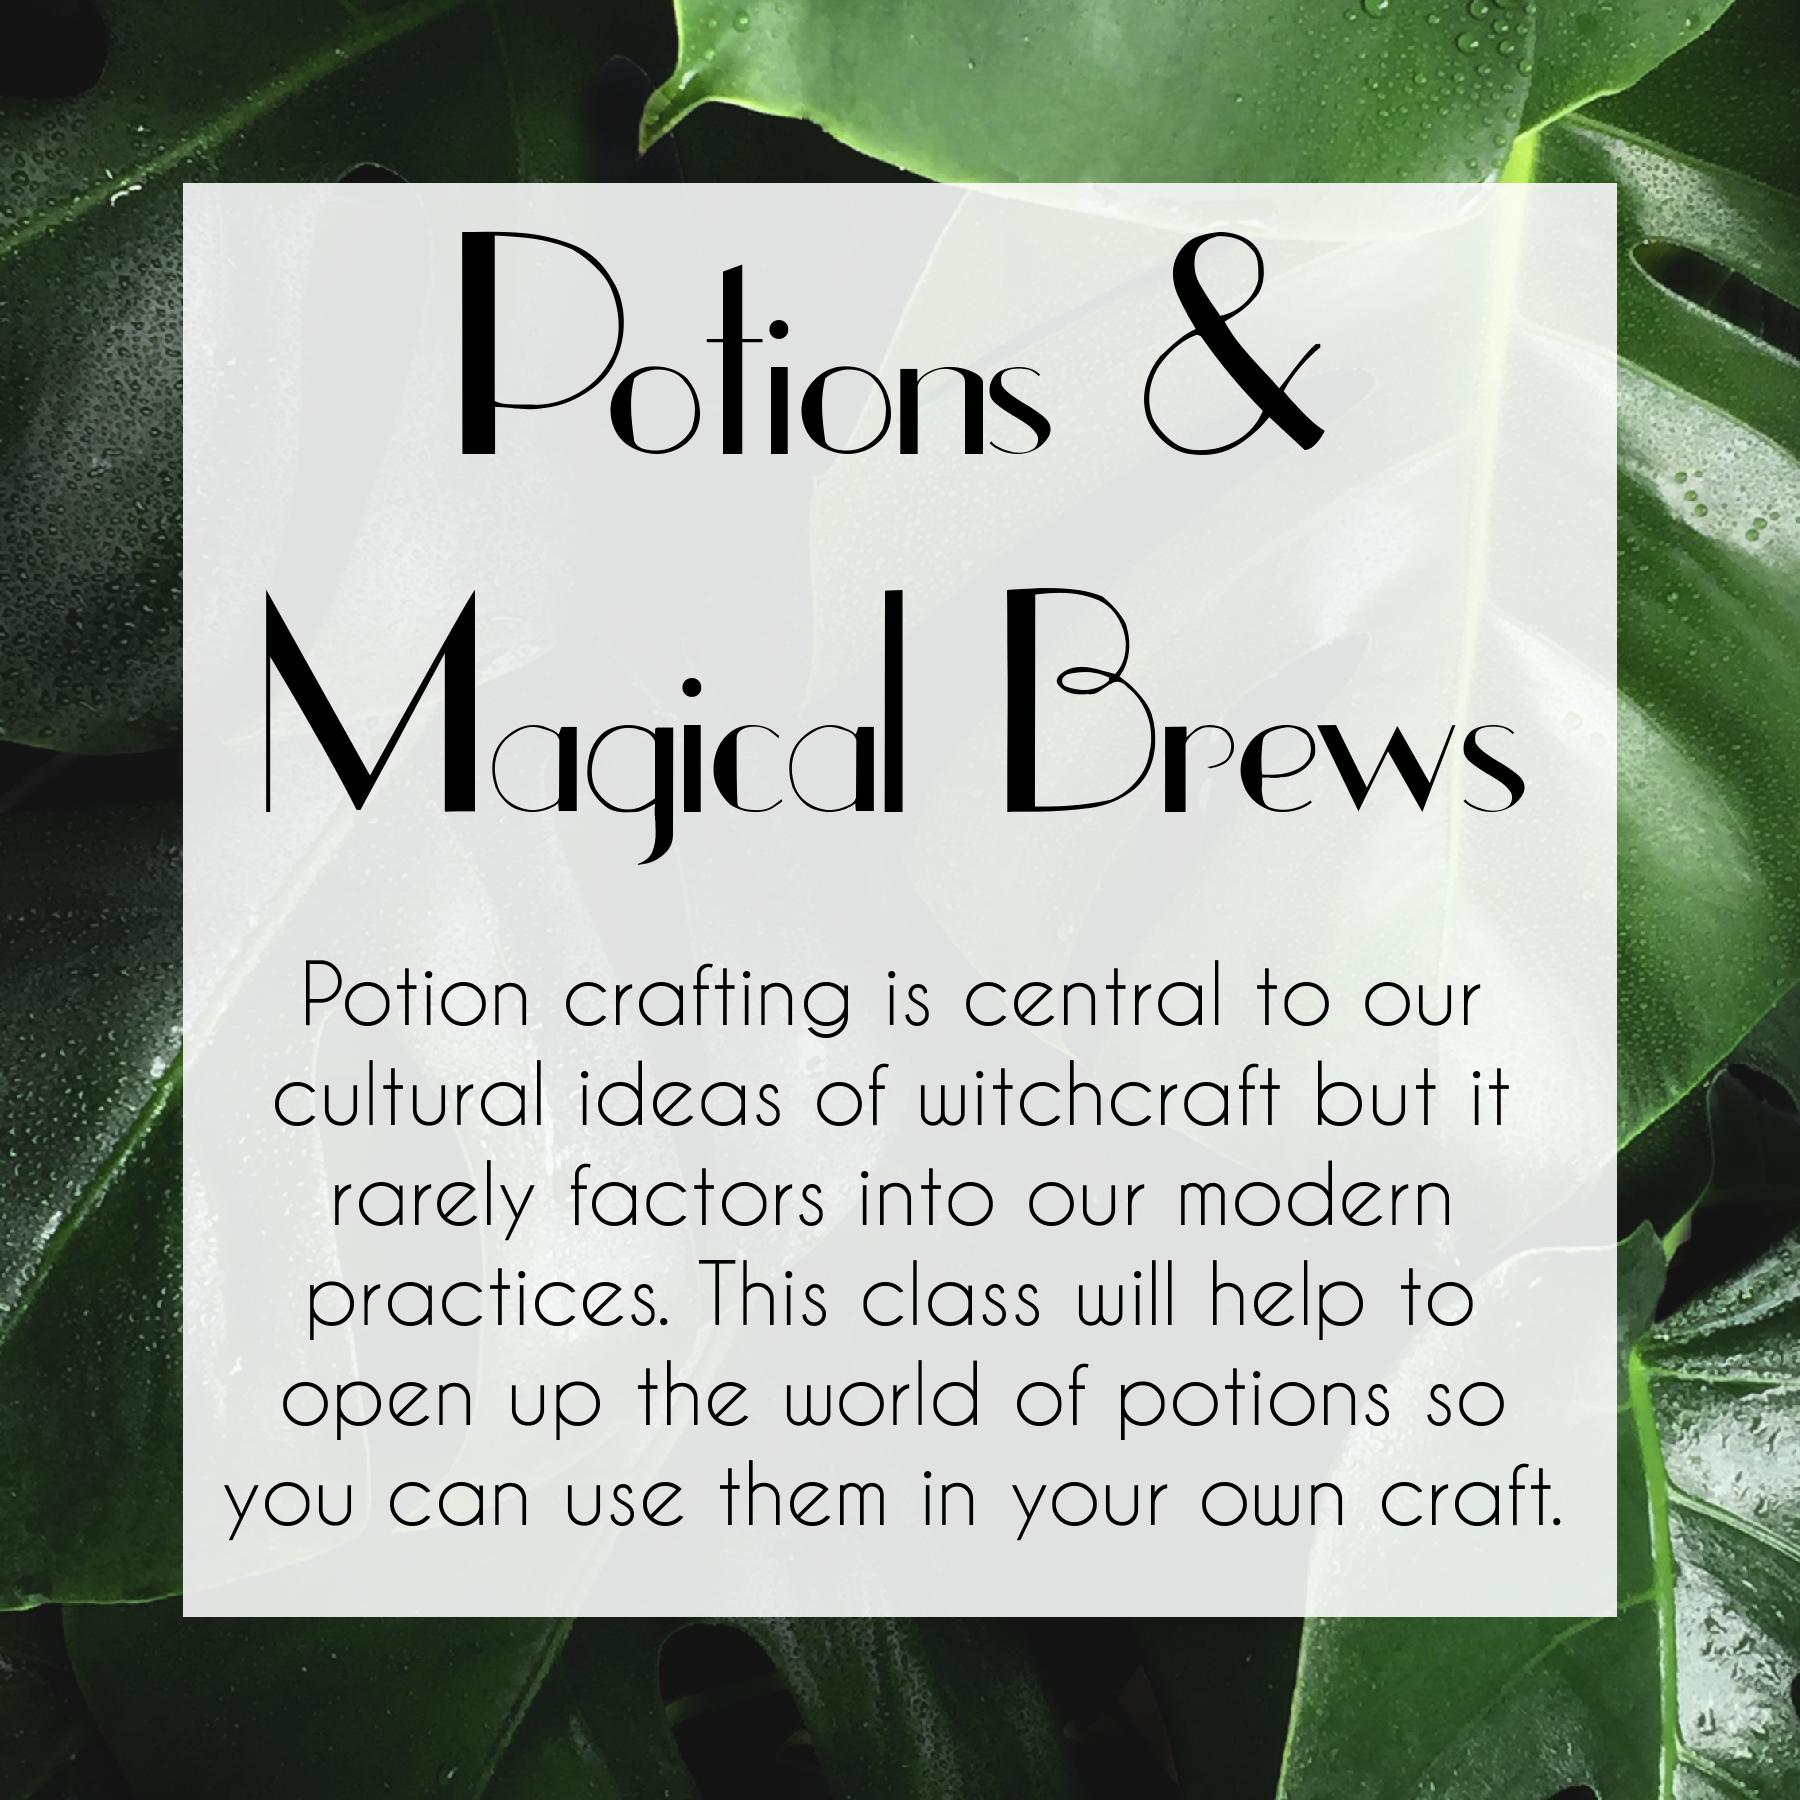 Potions & Magical Brews Course by The Traveling Witch